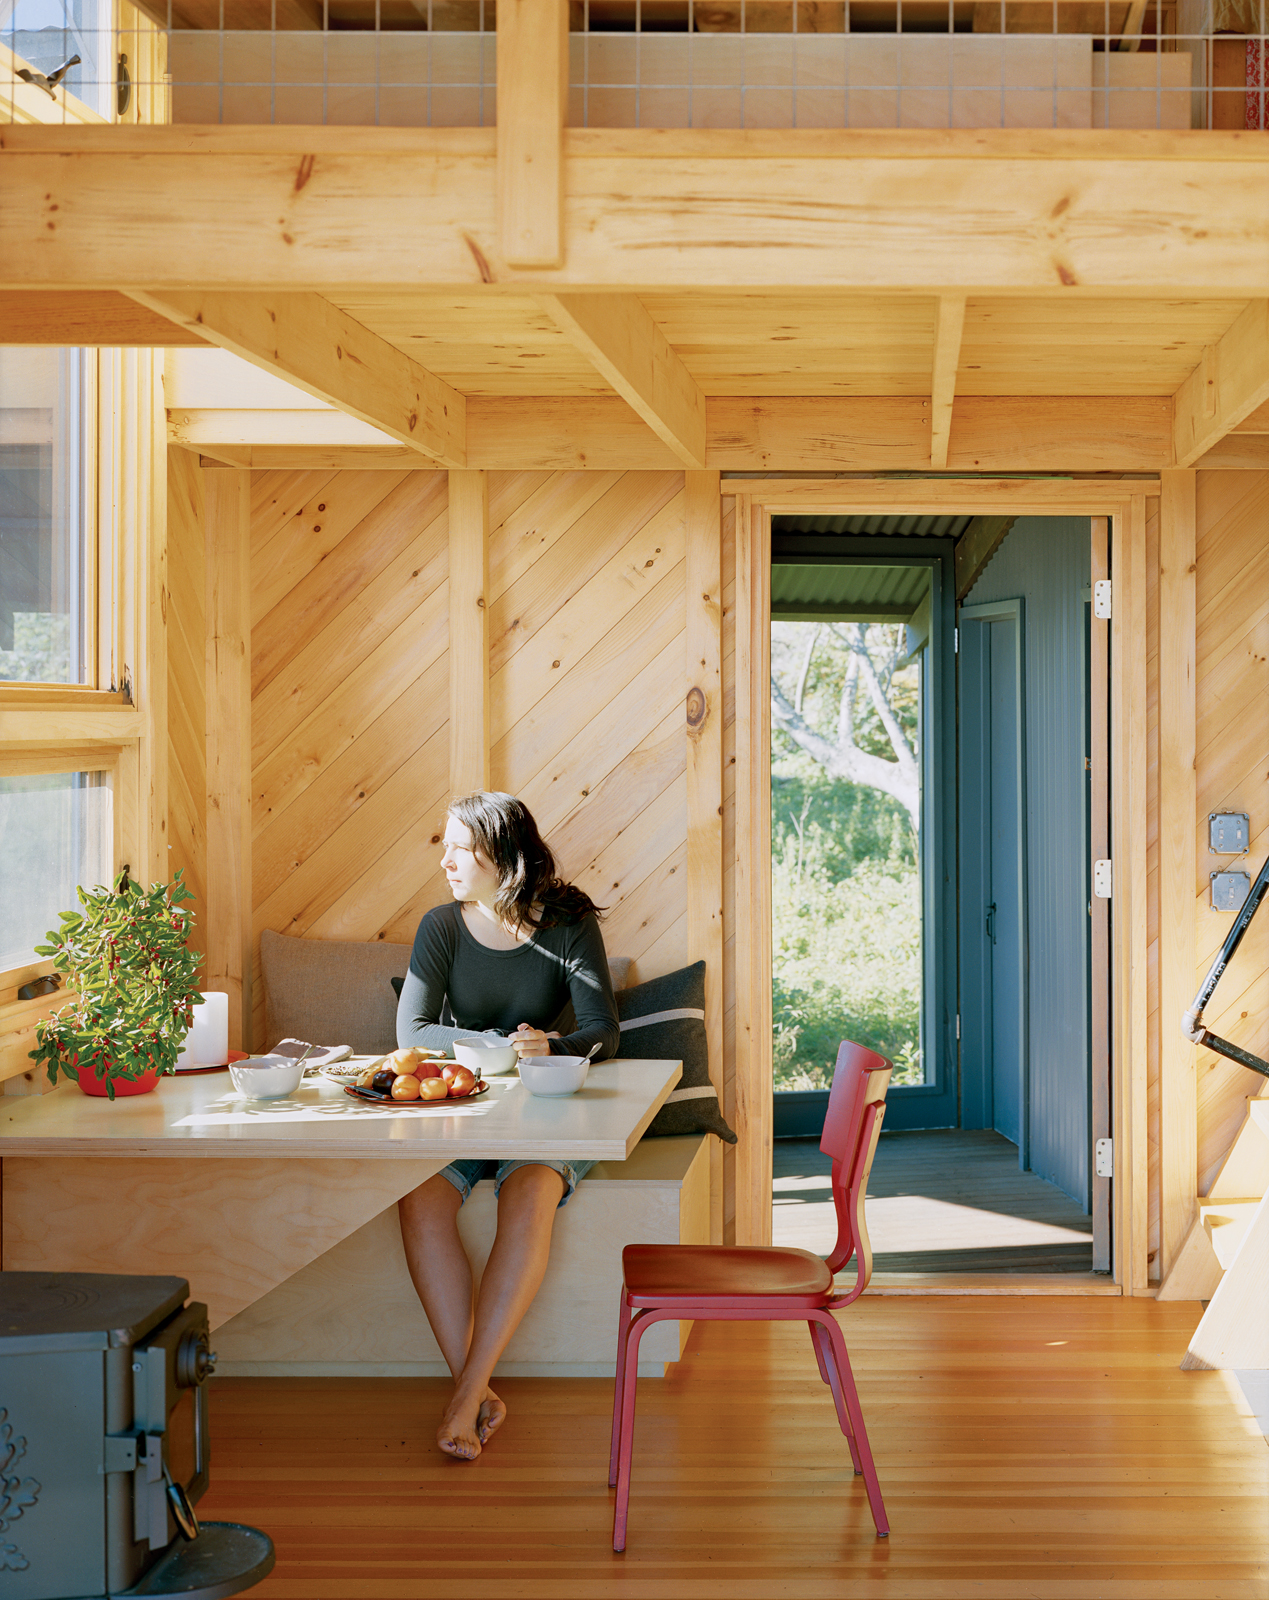 Pine clad dining room with built-in furniture